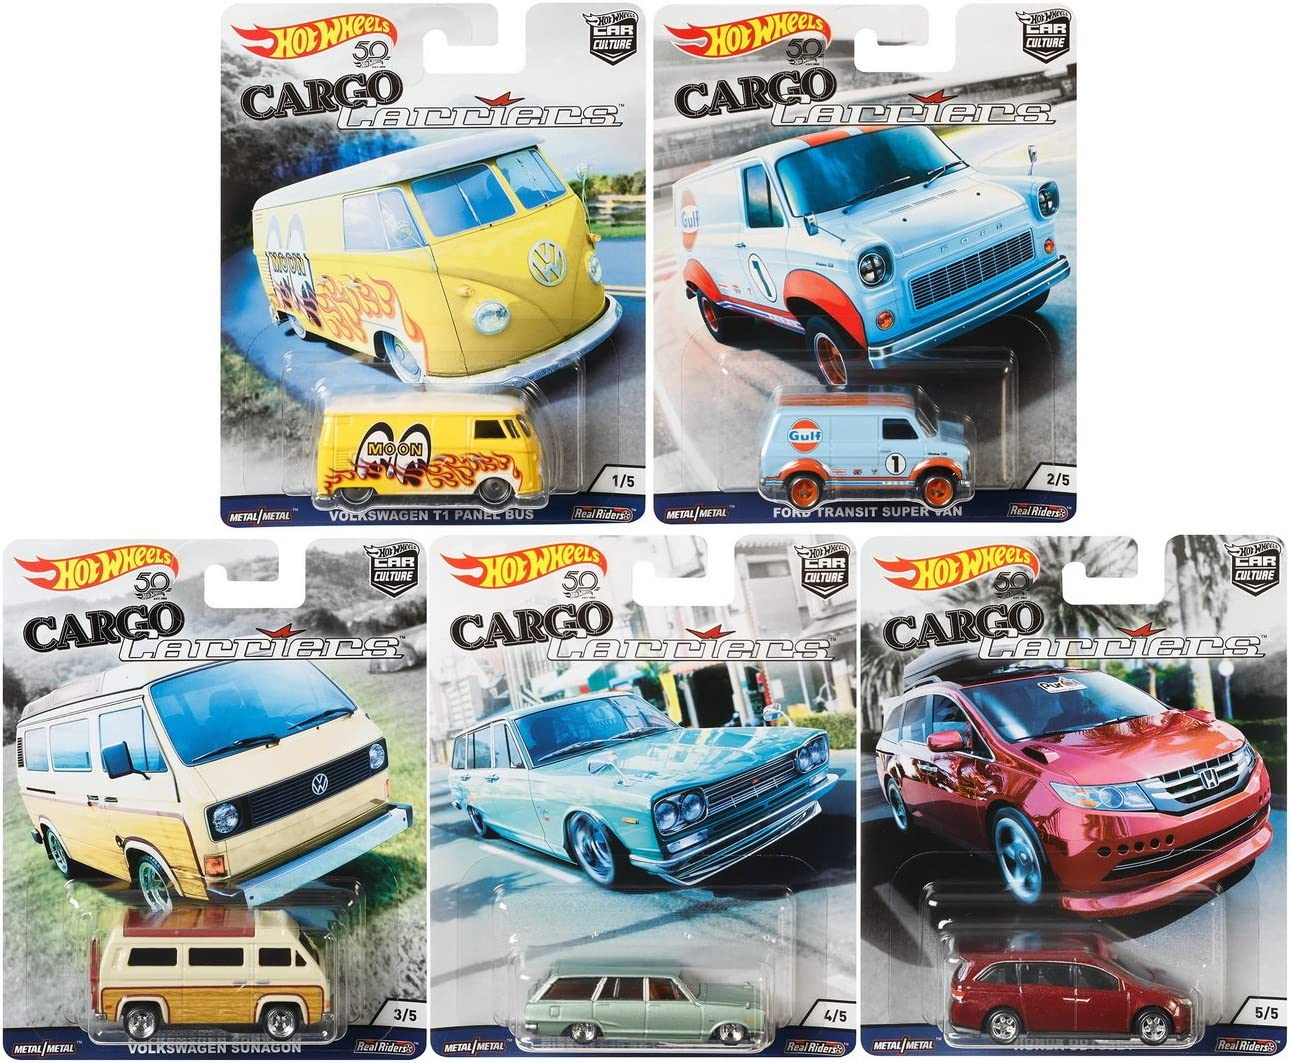 Hot Wheels Car Culture 2018 Cargo Carriers Series Premium Adult Collectible Diecast Cars, Set of 5